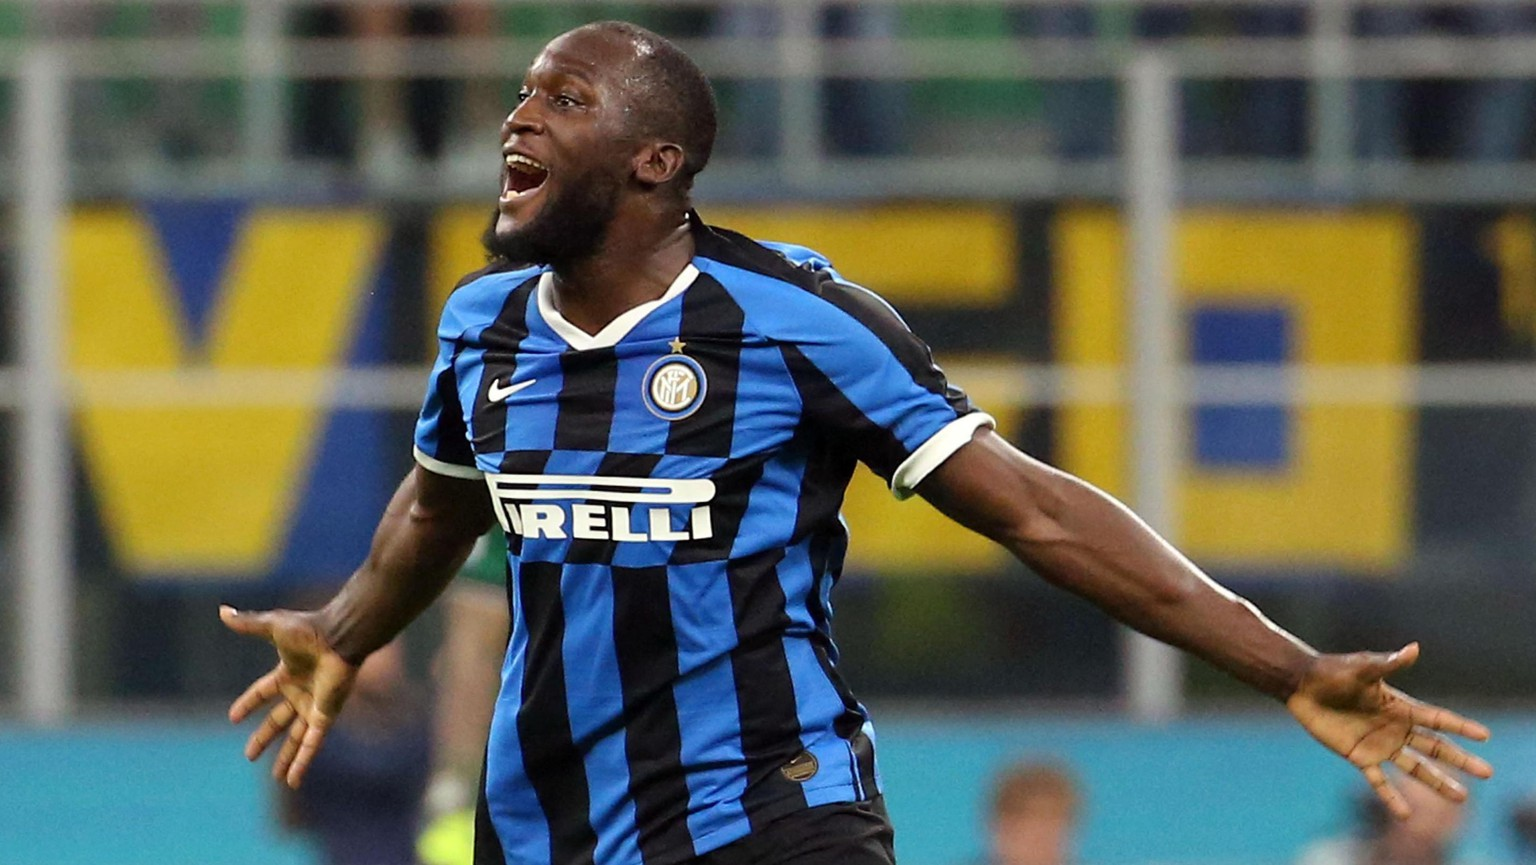 epa07951855 Inter's Romelu Lukaku celebrates after scoring a goal during the Italian Serie A soccer match FC Inter vs Parma Calcio at the Giuseppe Meazza stadium in Milan, Italy, 26 October 2019.  EPA/MATTEO BAZZI